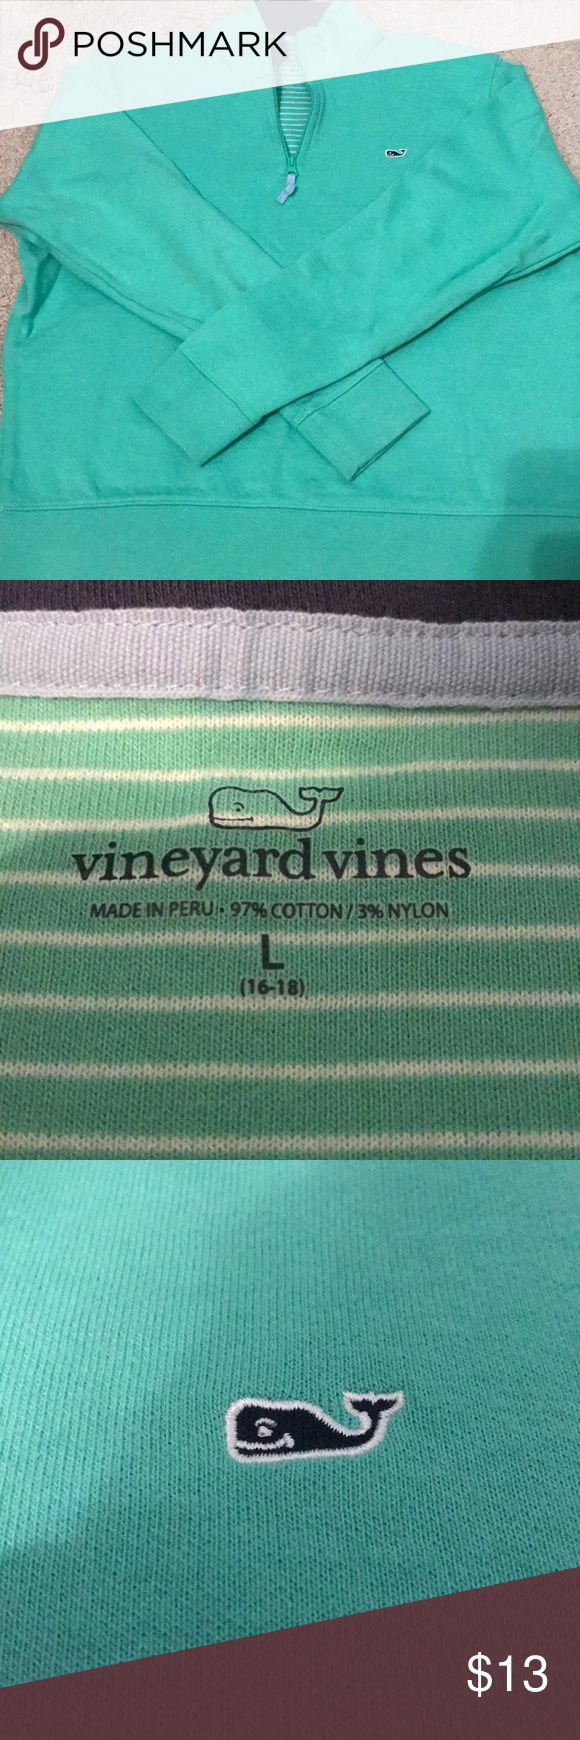 Boys Vineyard Vines Quarter Zip Get your stylish little boy or girl this awesome quarter zip for the holidays!!! Size youth L (16-18). Sea foam green in color. Worn once. Could also fit adult size XS!! Not super thin material, but good for a 50-60 degree day. Vineyard Vines Jackets & Coats